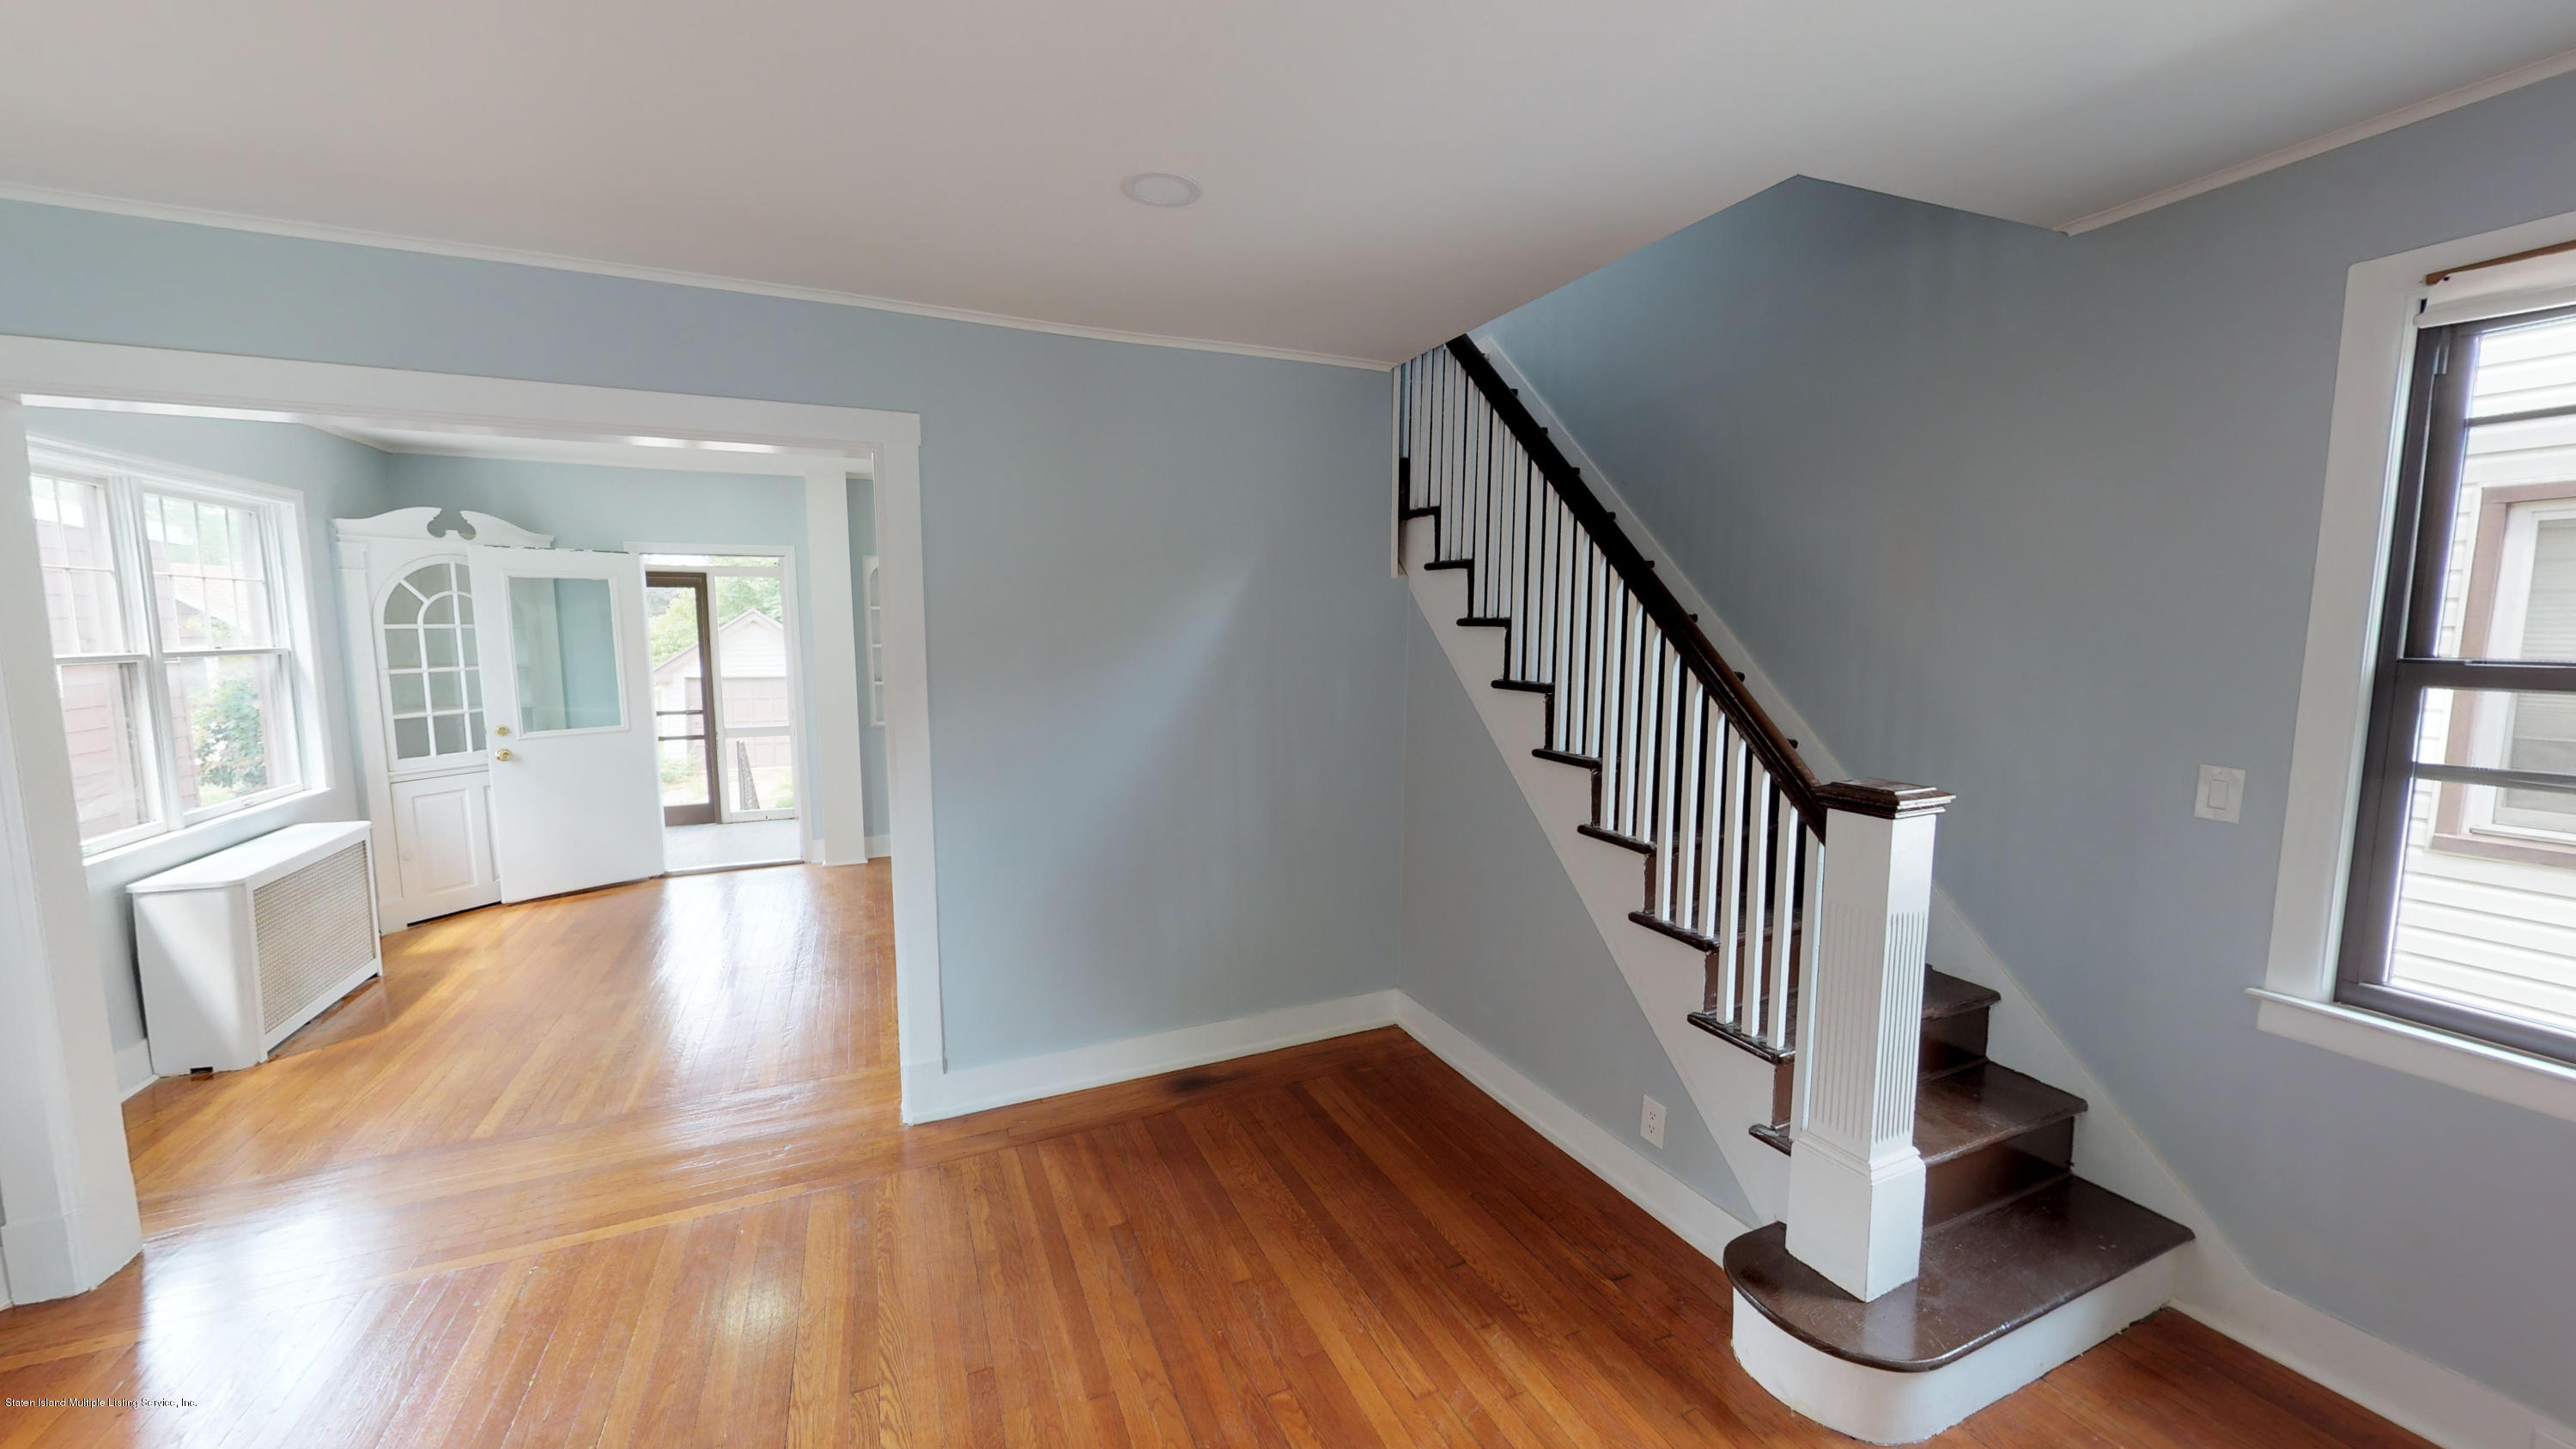 Single Family - Detached 54 Quinlan Avenue  Staten Island, NY 10314, MLS-1129378-11